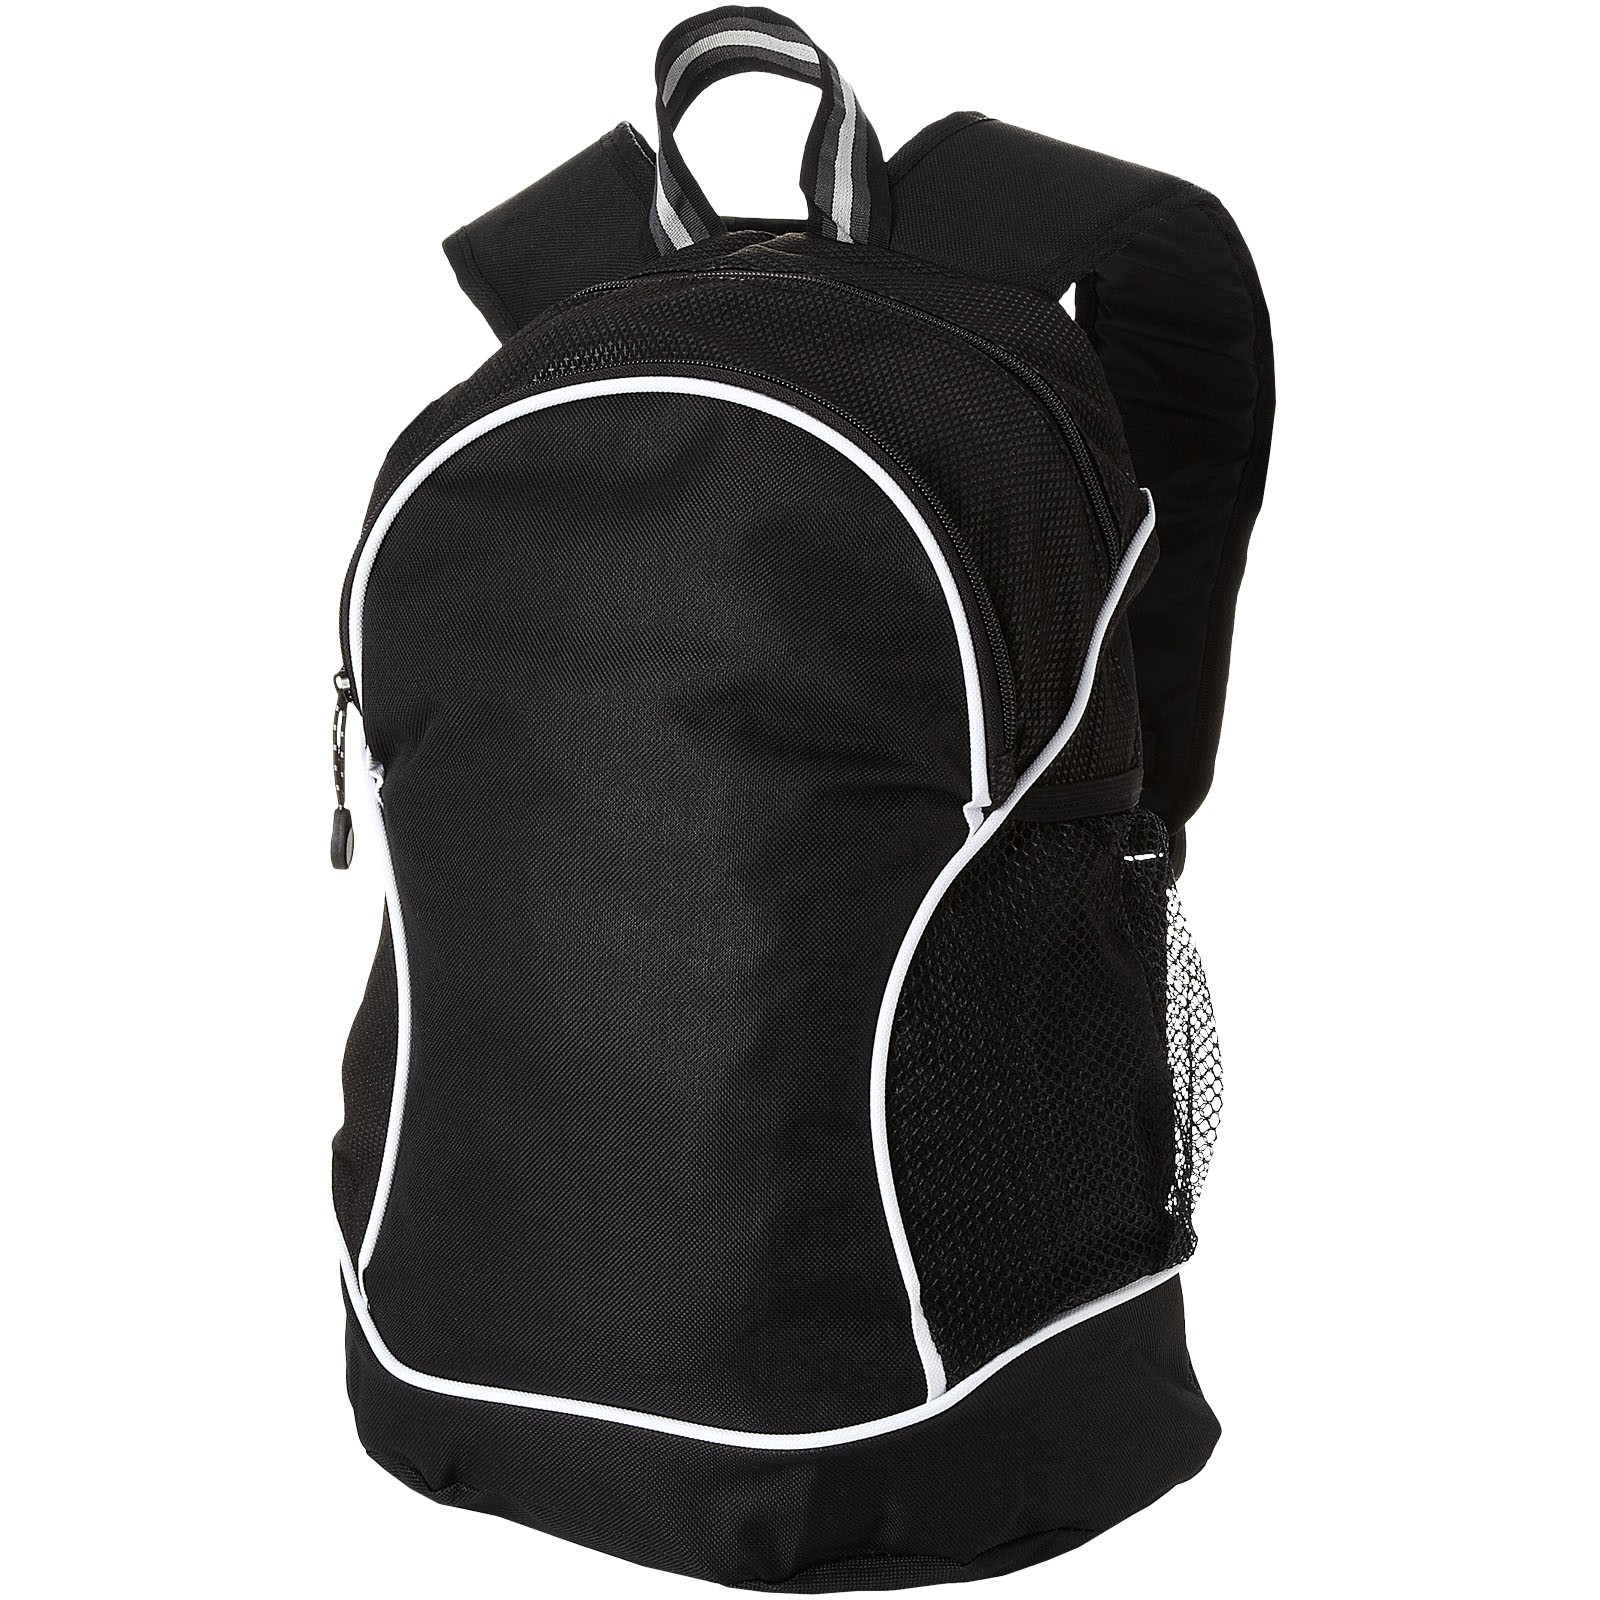 Boomerang backpack - Solid black / Solid black